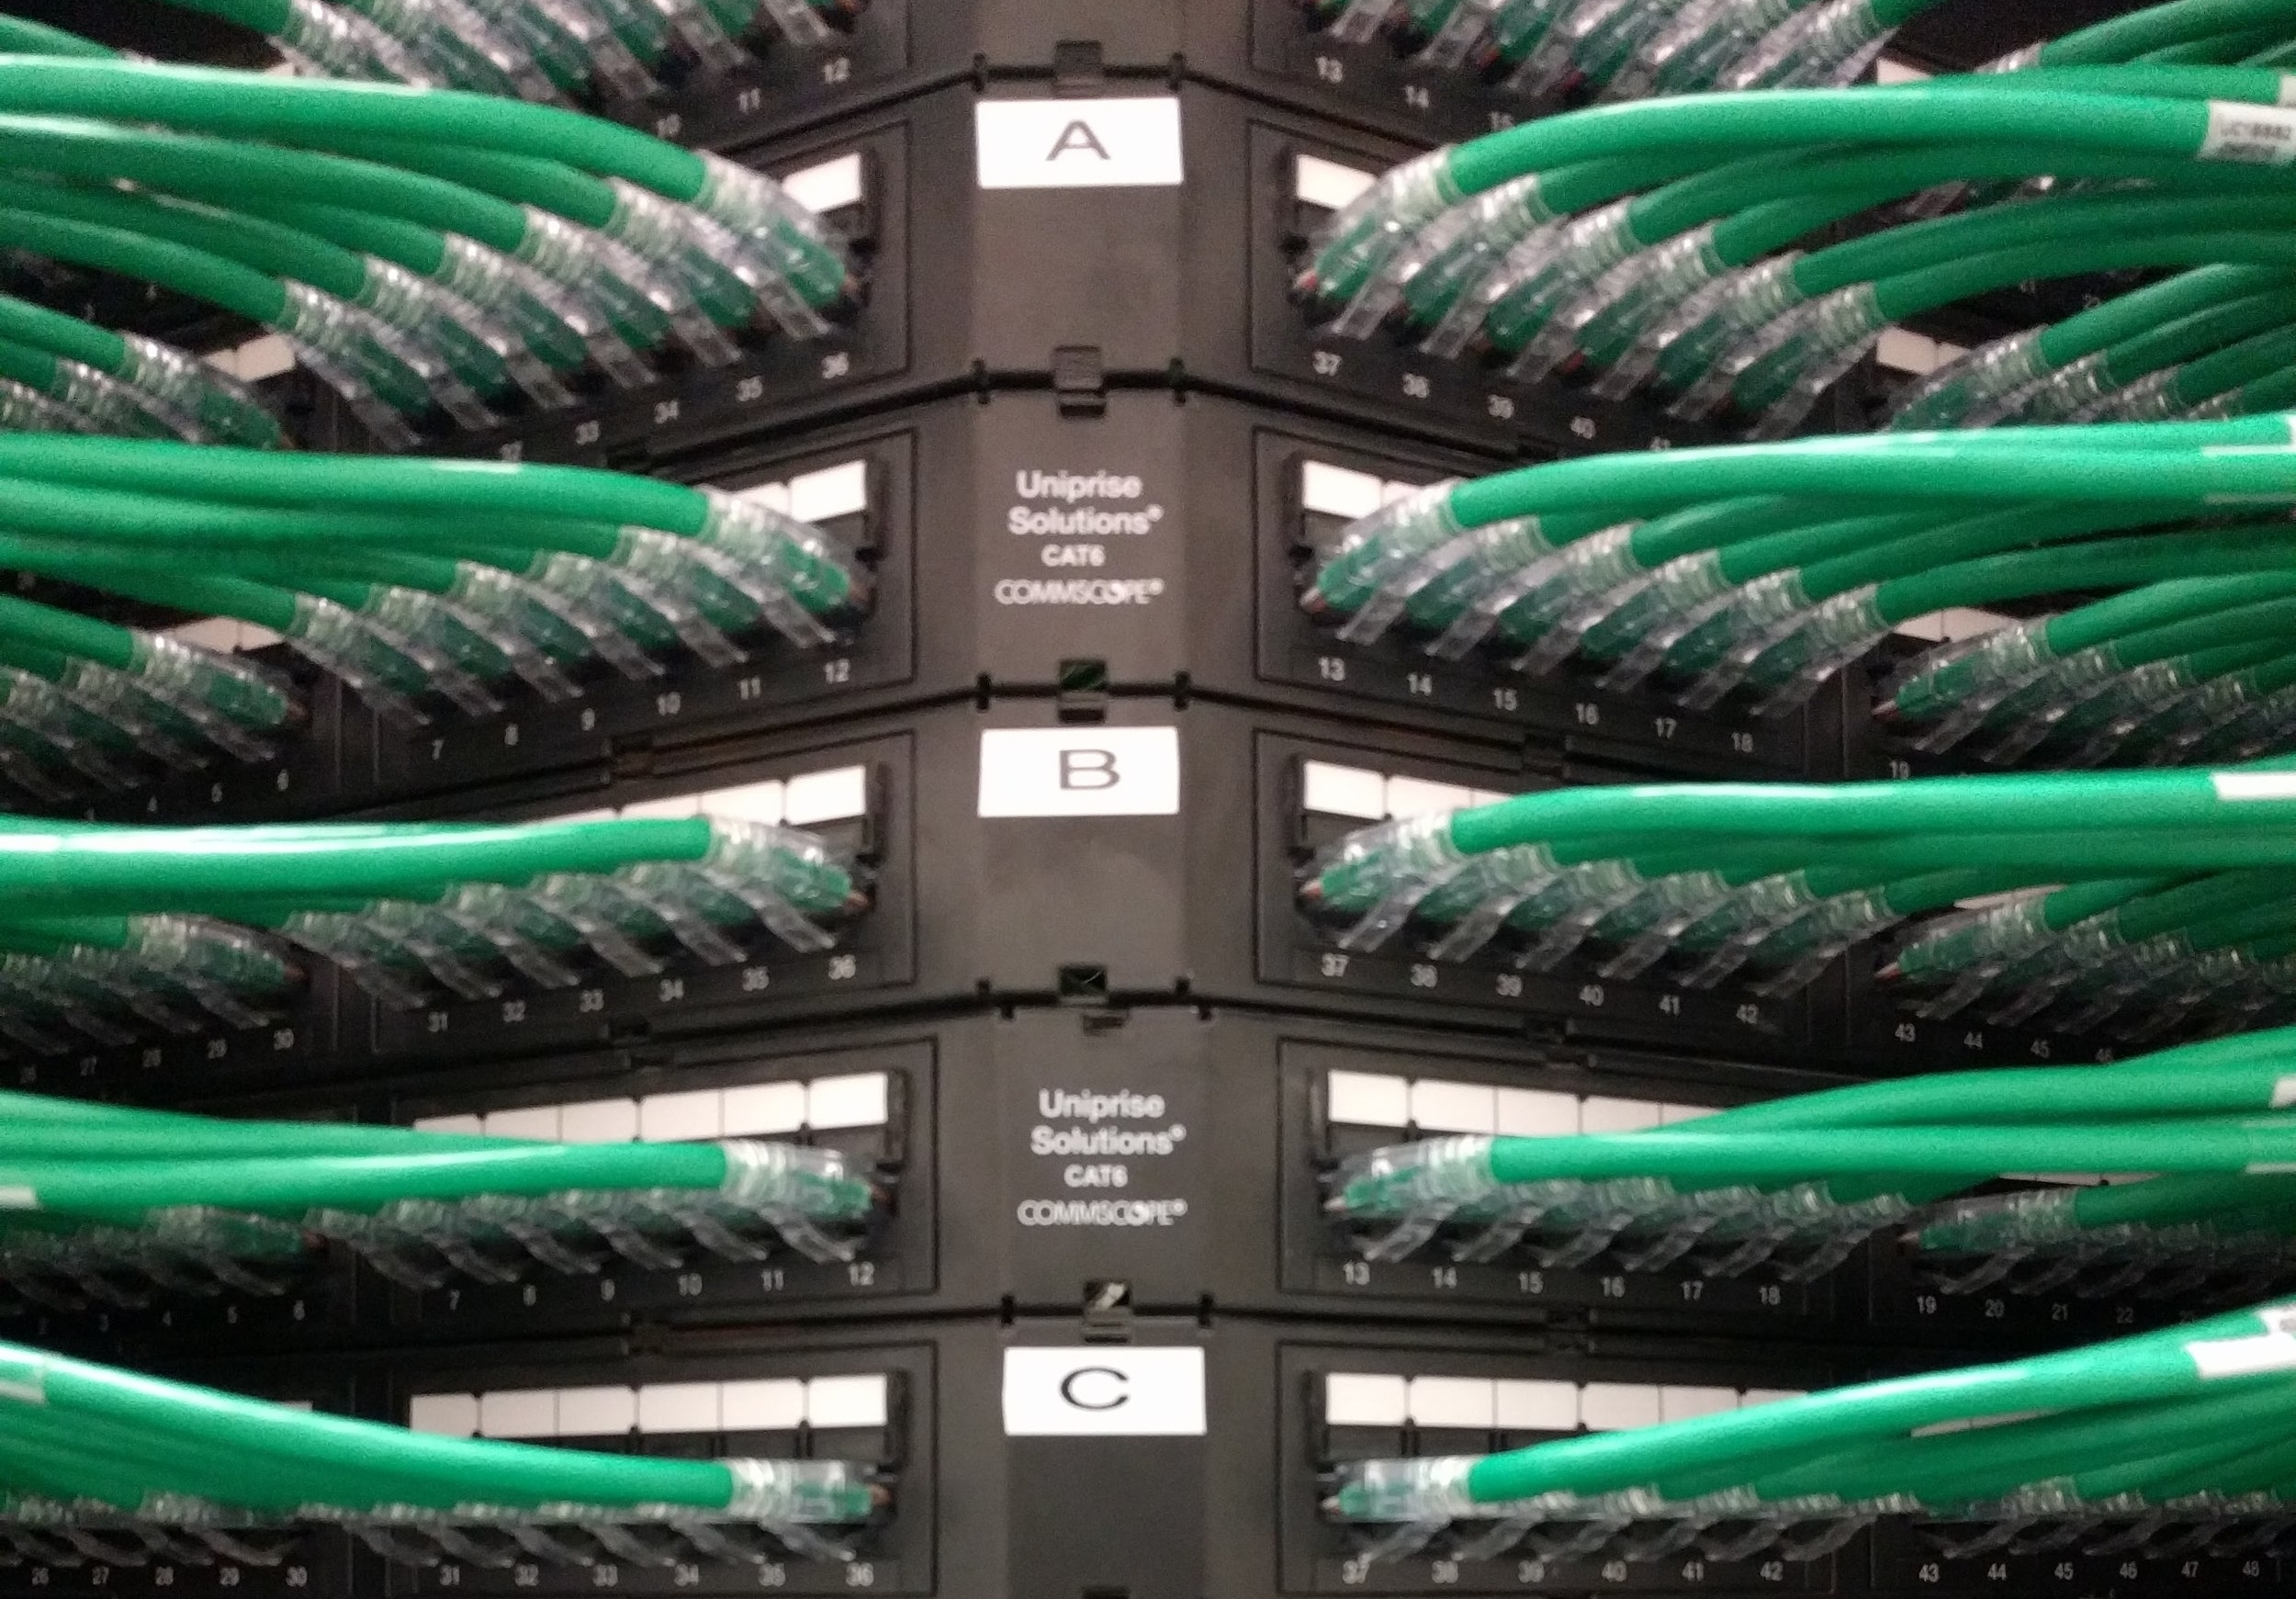 Network Services - Your network is our specialty.We pride ourselves on understanding the intricacies of network infrastructure and offer competitive packages for network auditing, design, installation, security, and maintenance services.